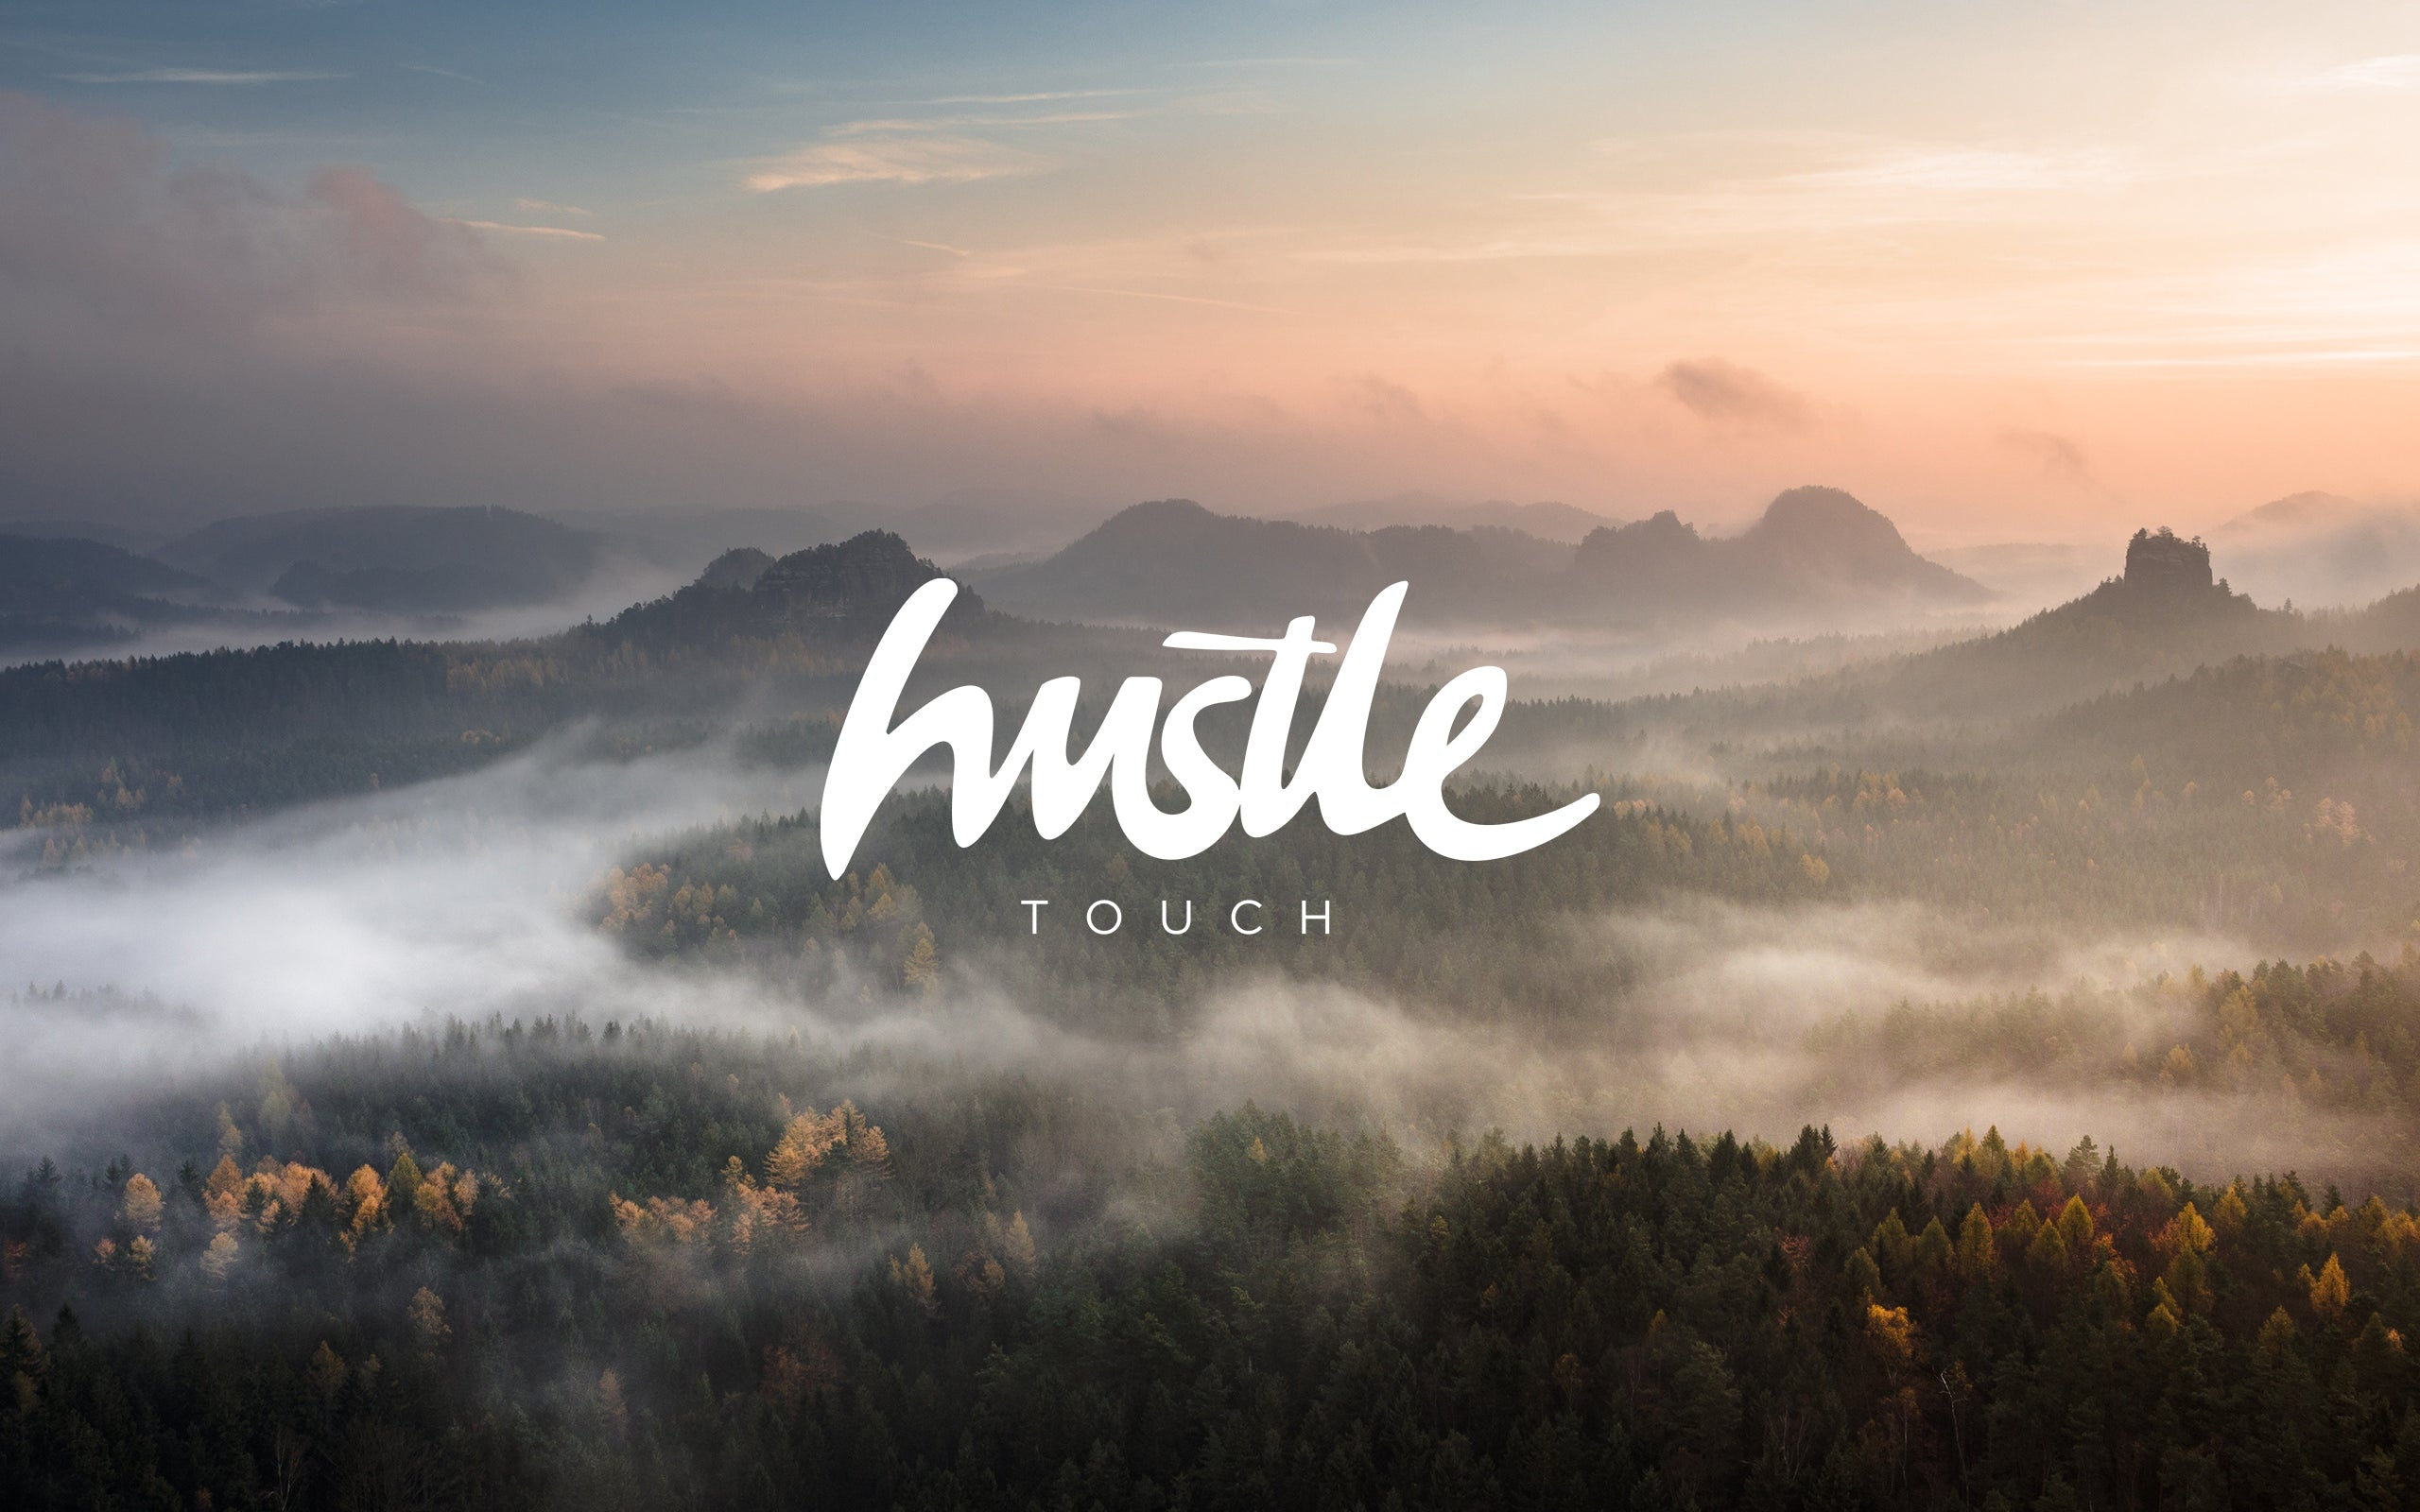 Hustle Touch Wallpaper 023 - Hustle Touch